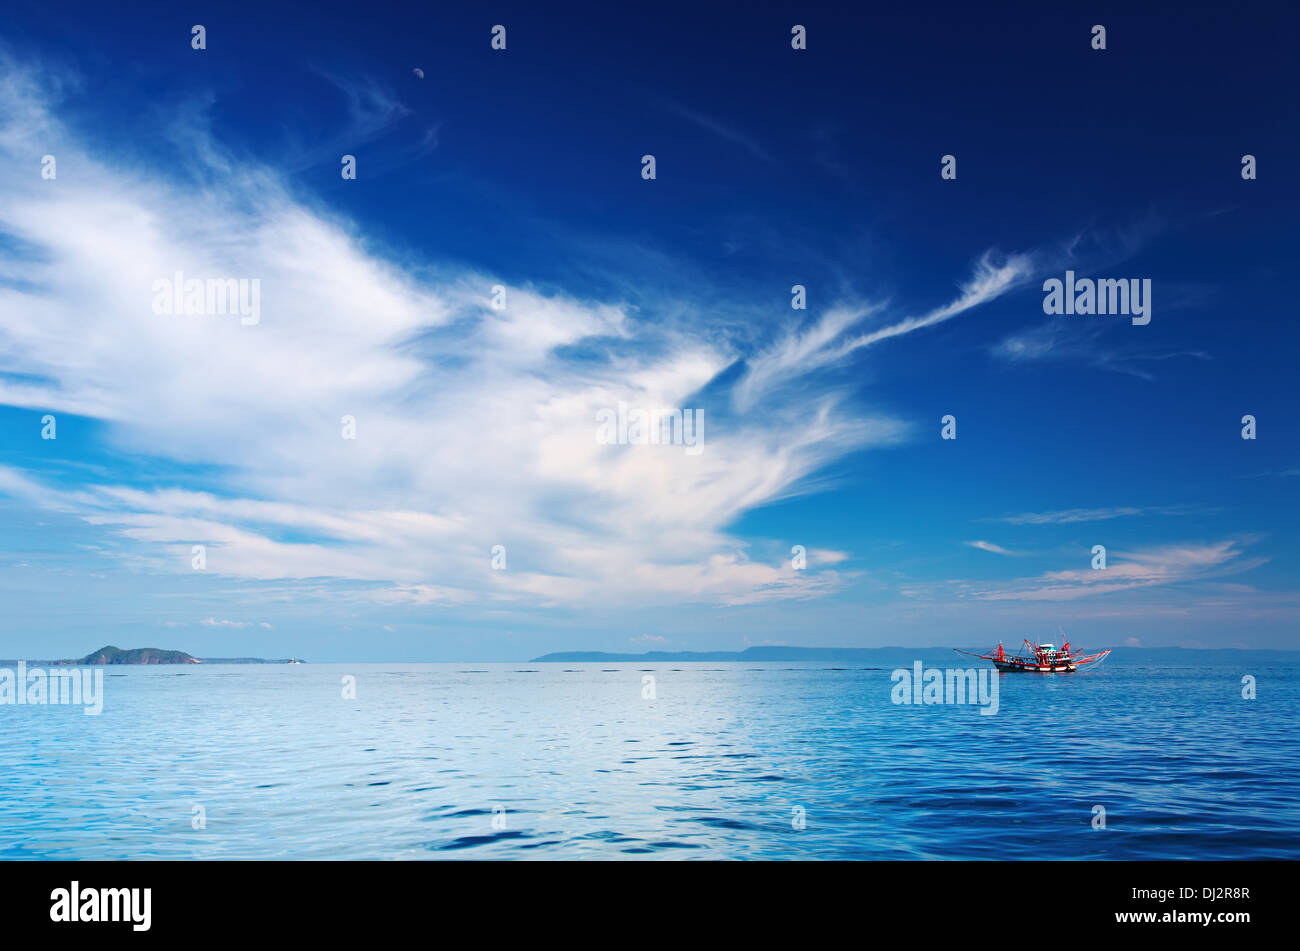 Seascape with fishing boat, Trat archipelago, Thailand - Stock Image